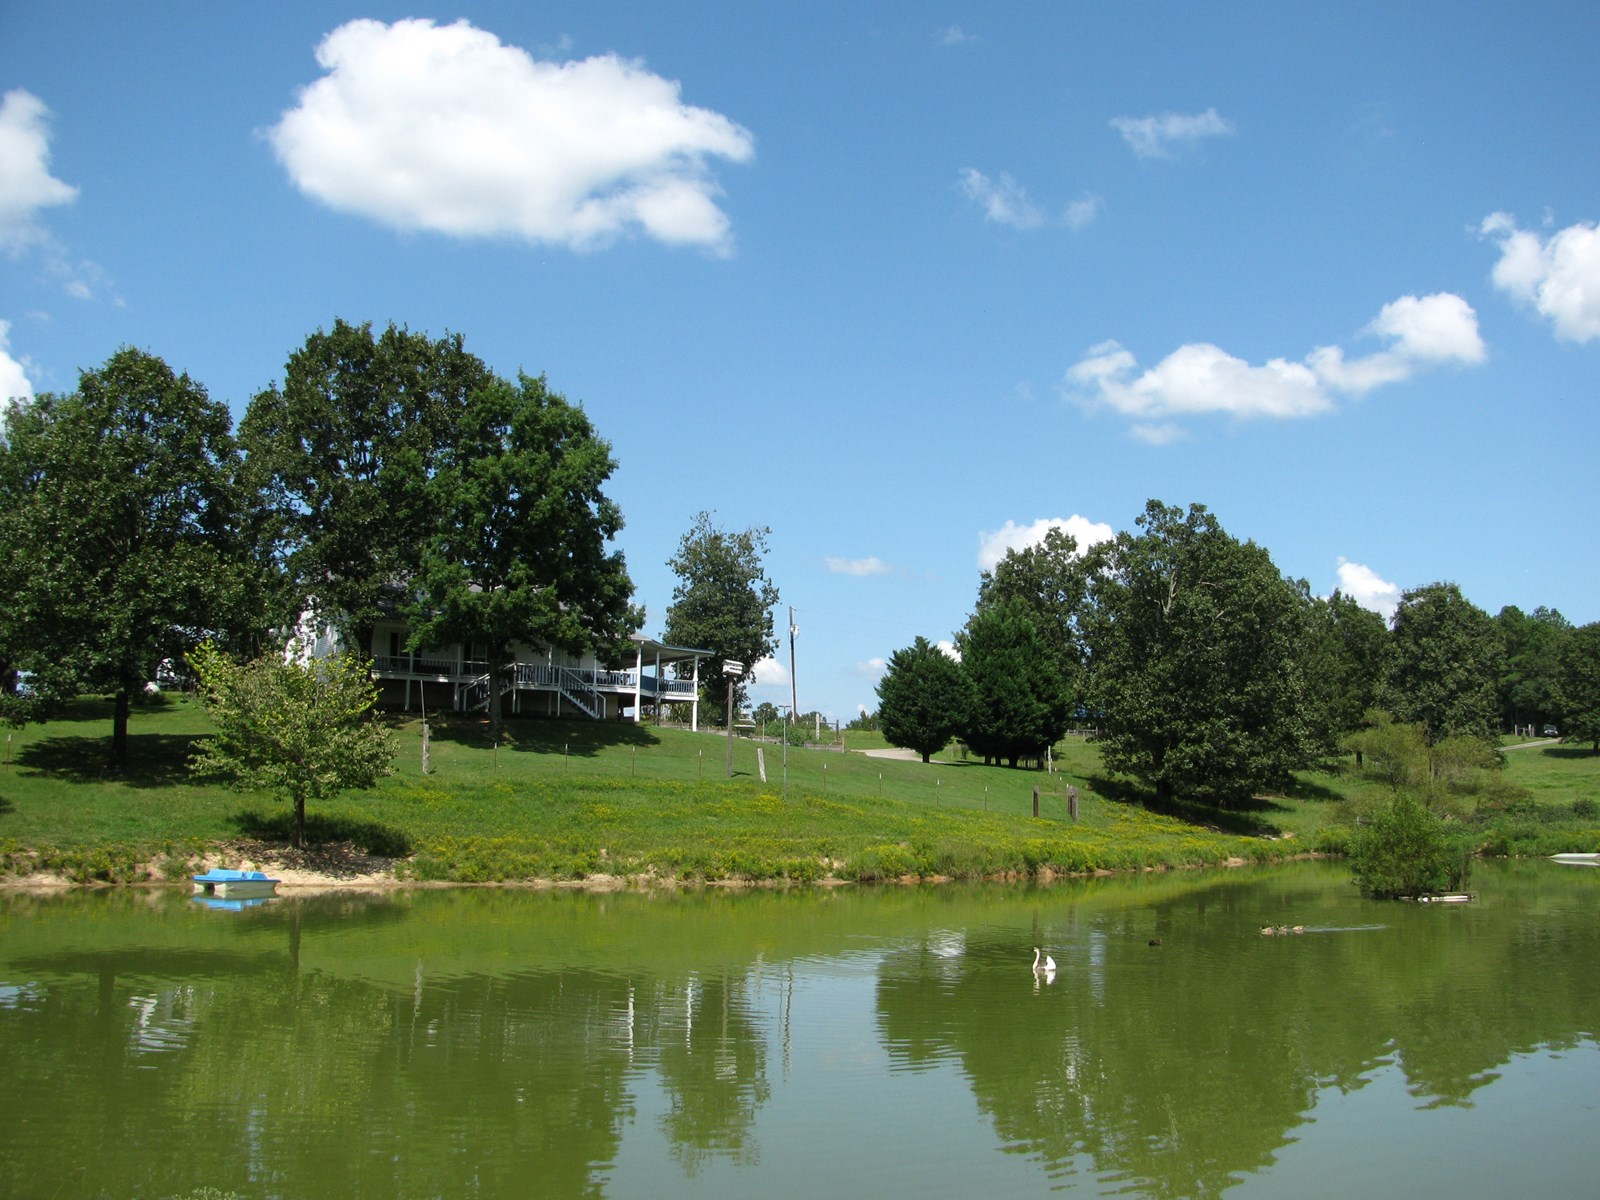 COUNTRY HOME, 5 ACRE MINI FARM IN TN FOR SALE, SHOP & POND